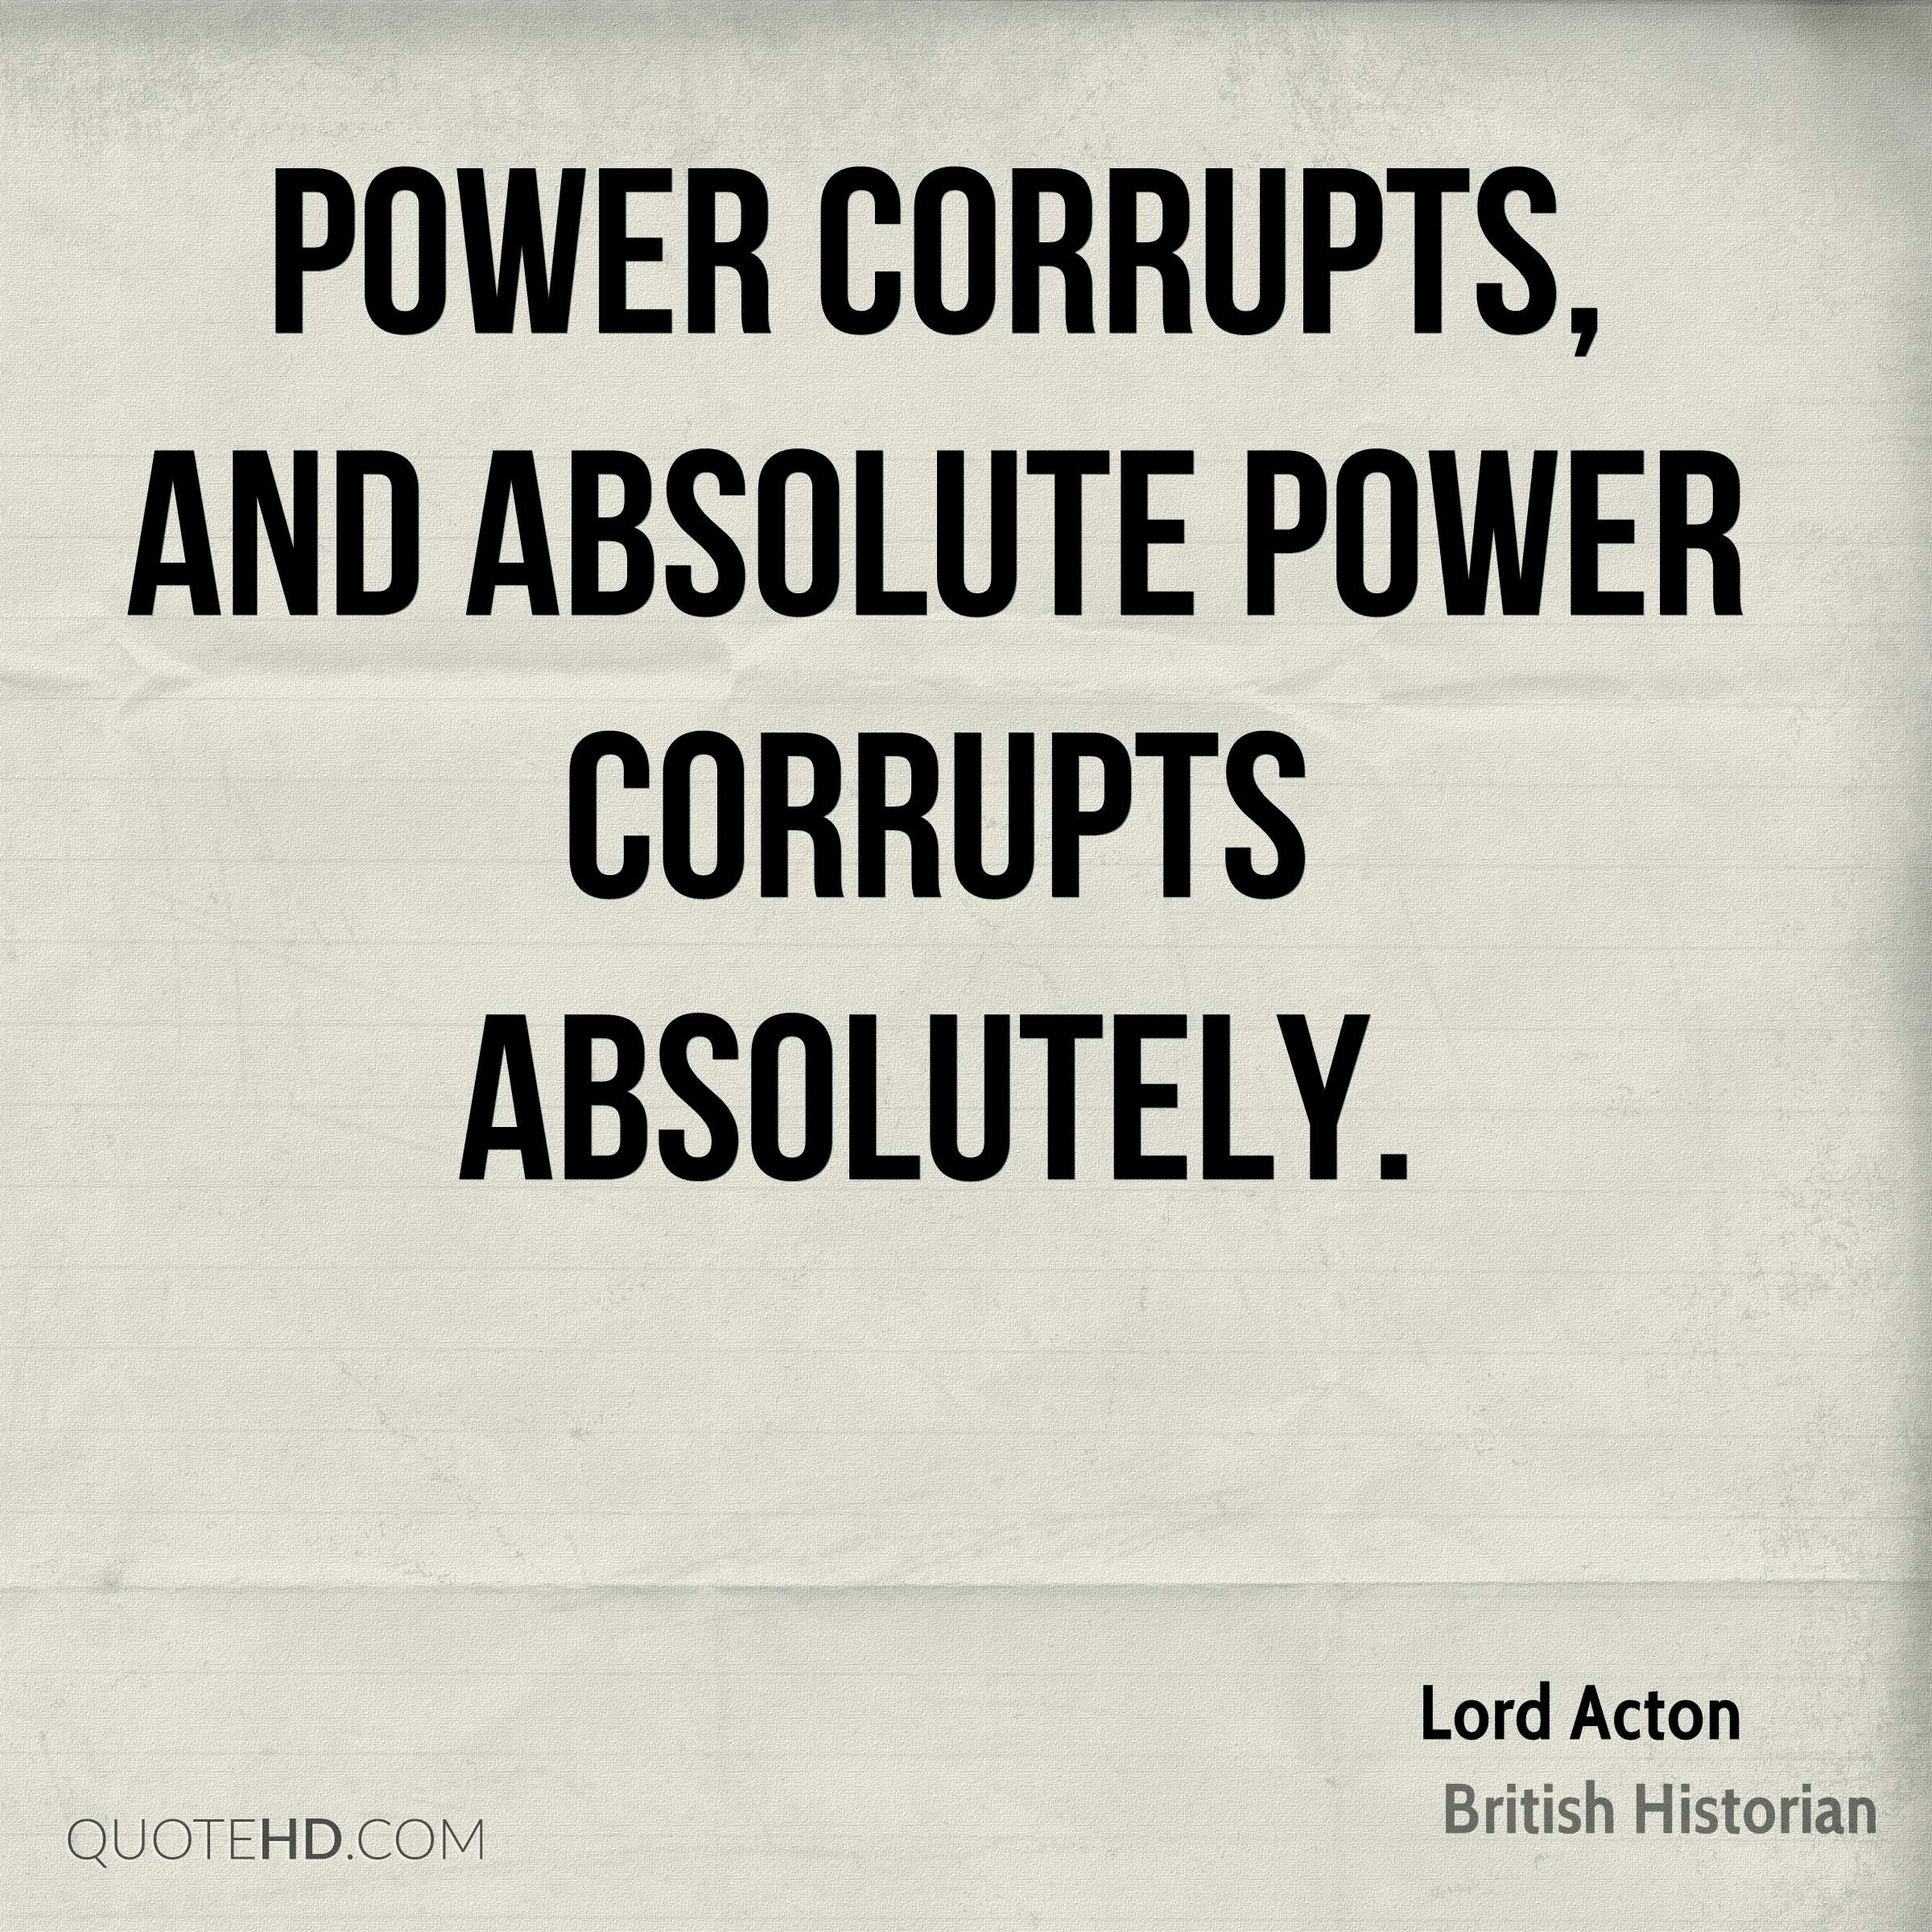 lord acton power quotes quotehd power corrupts and absolute power corrupts absolutely